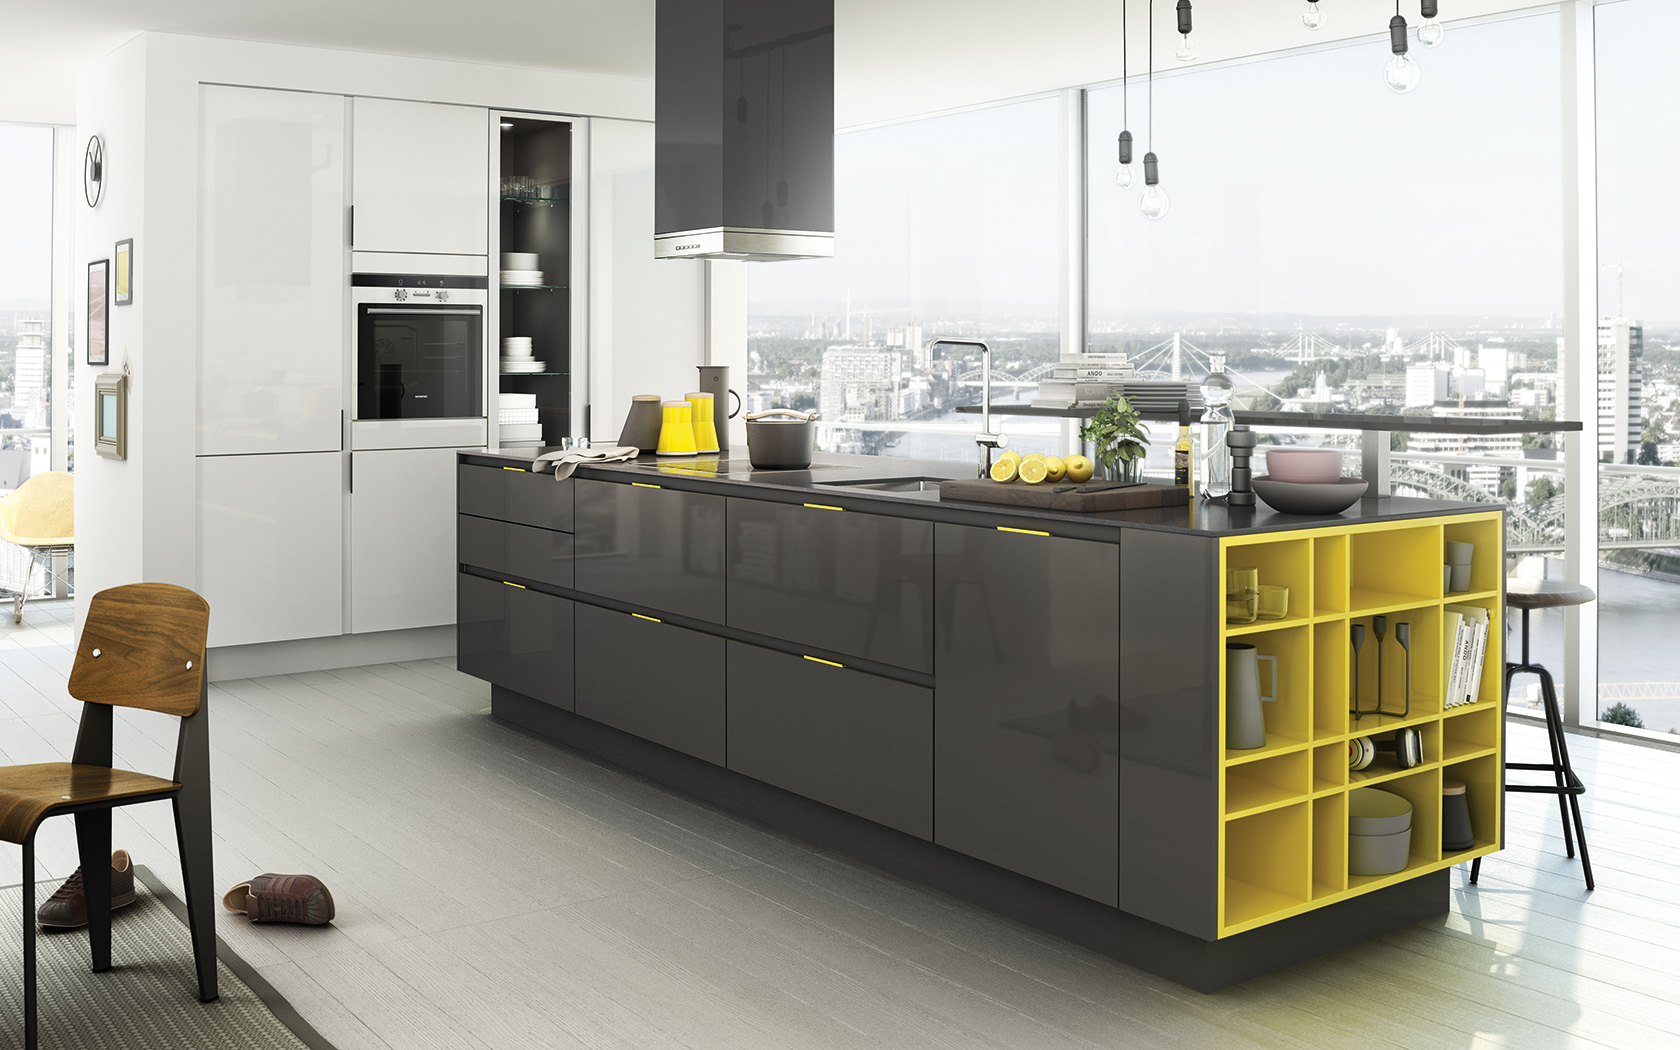 Residential Architecture: Kitchen Design With Color